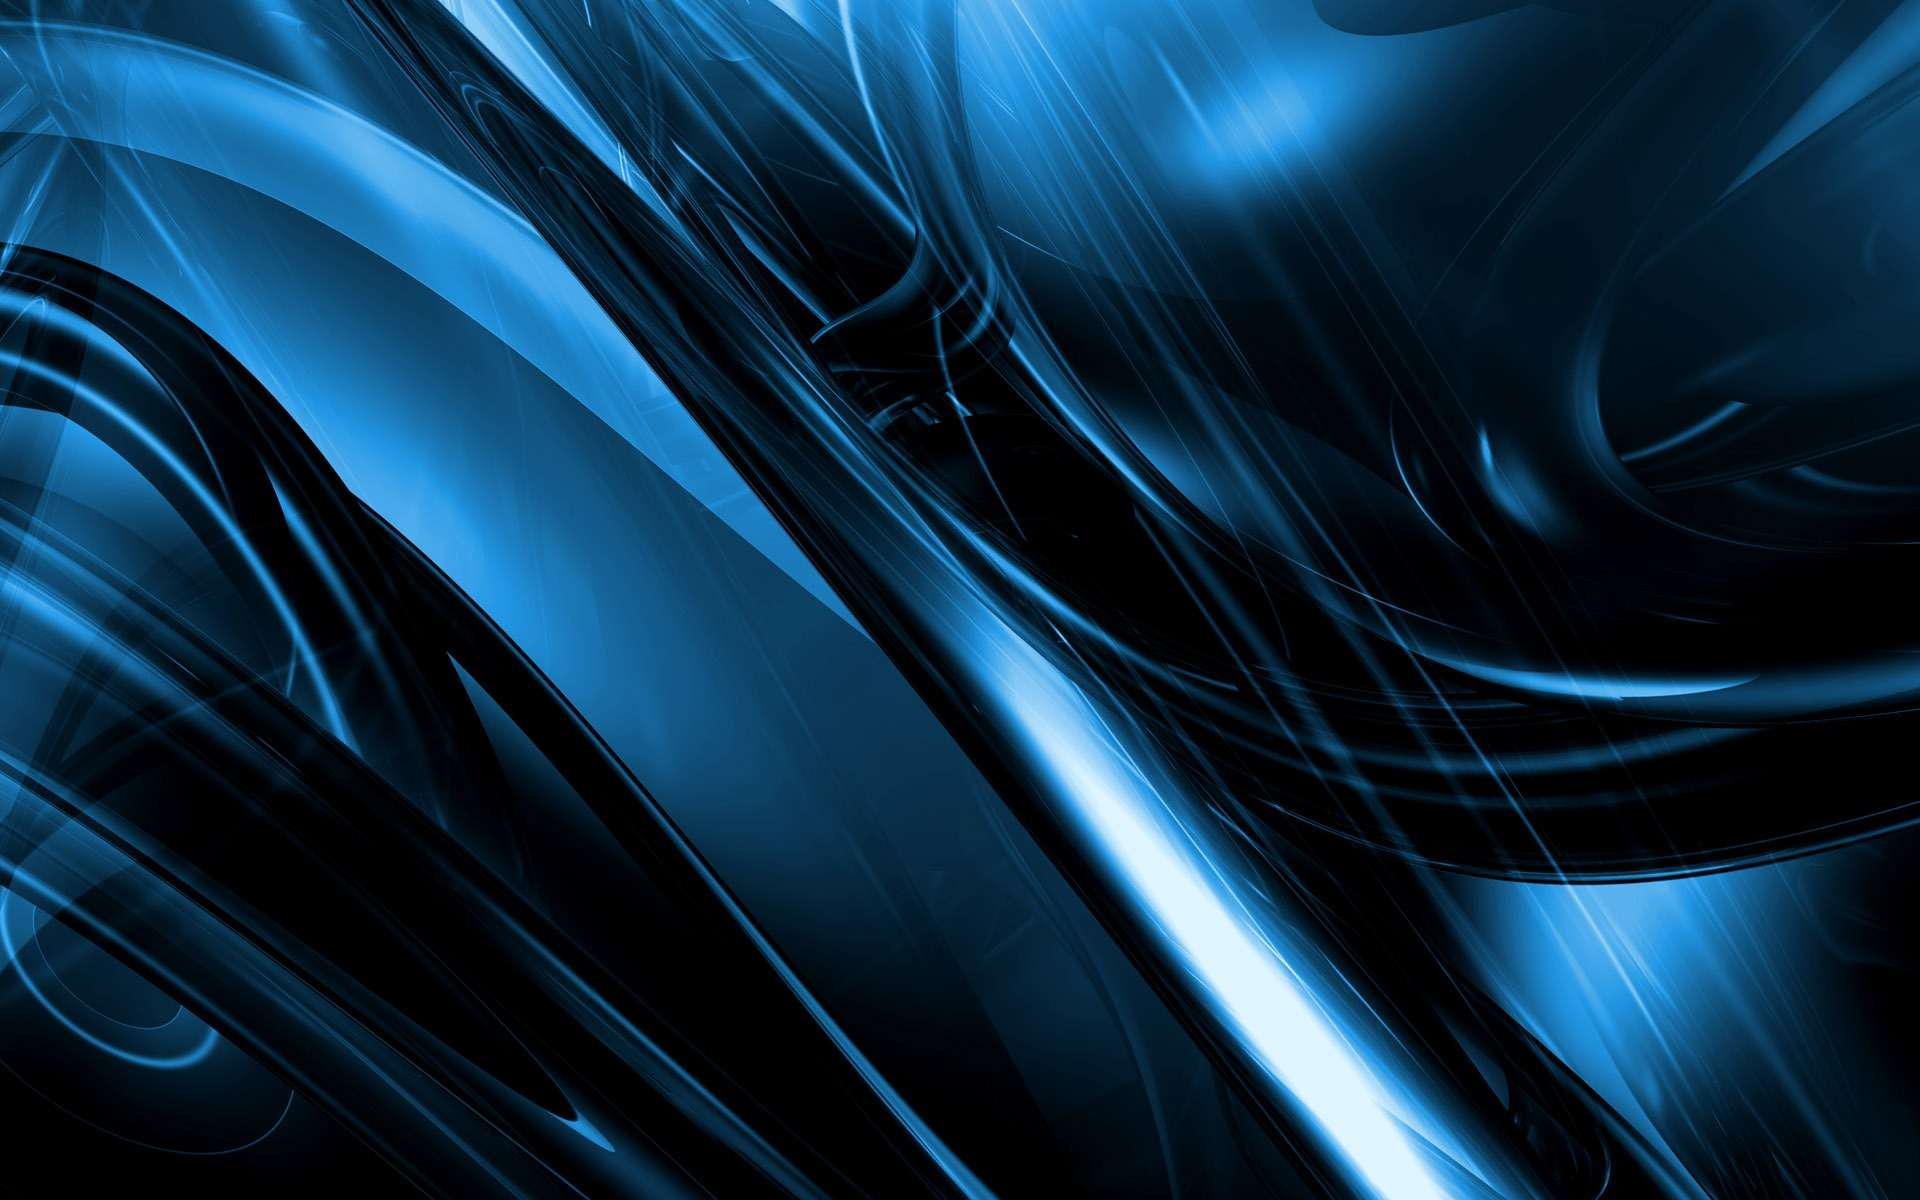 Blue Wallpaper 010